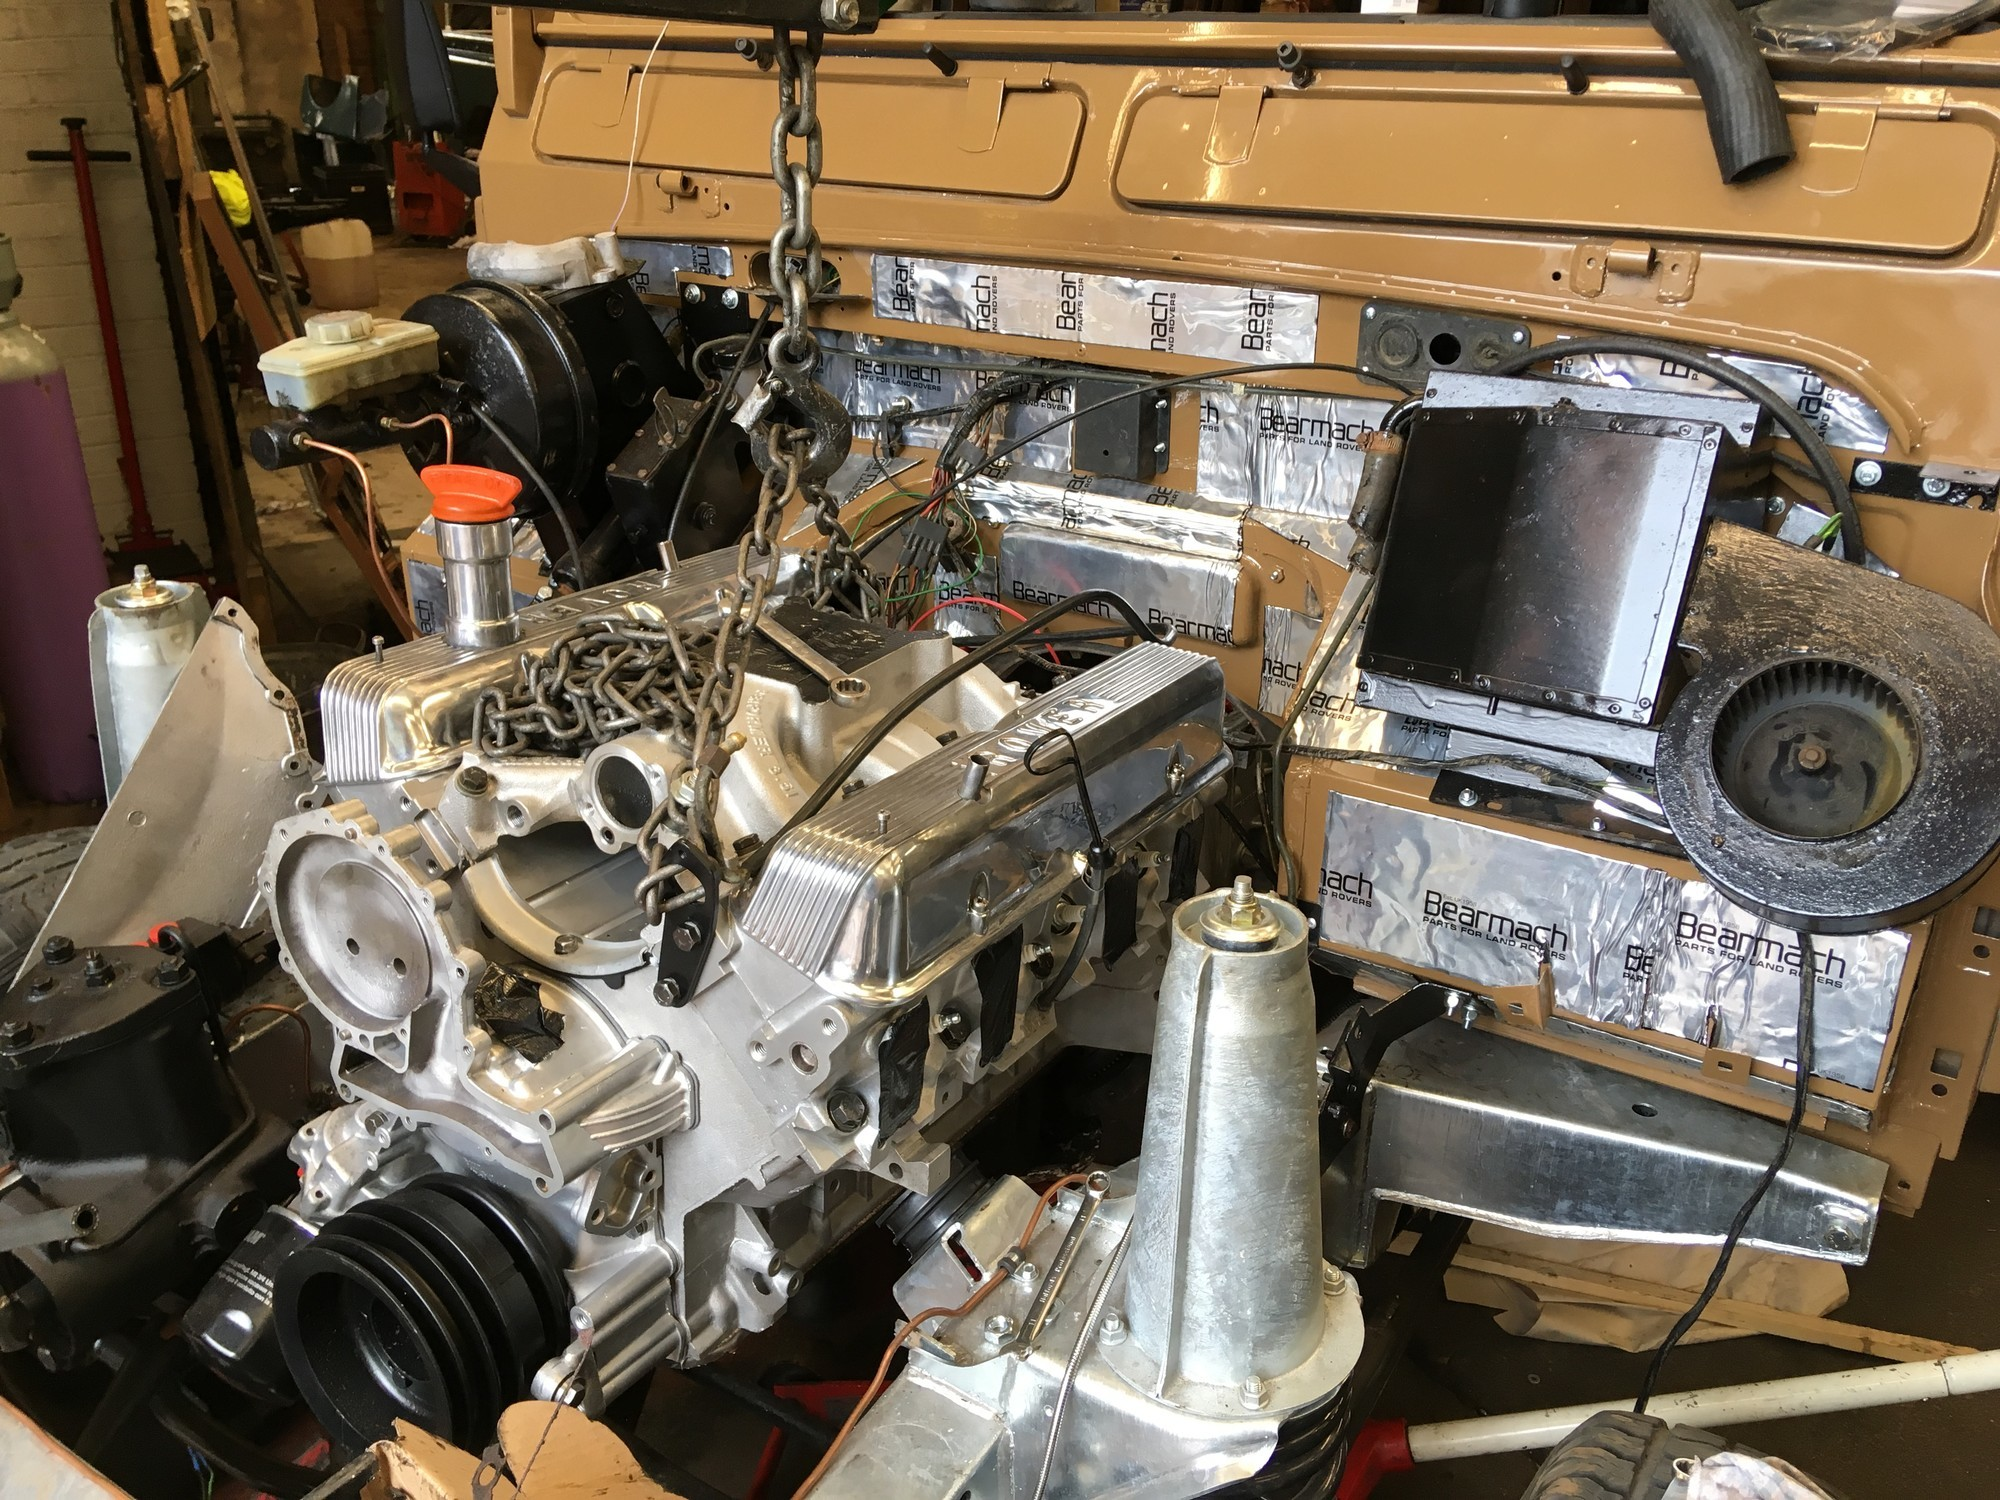 Land Rover 110 galvanised chassis reconditioned 3.5 V8 tuned engine